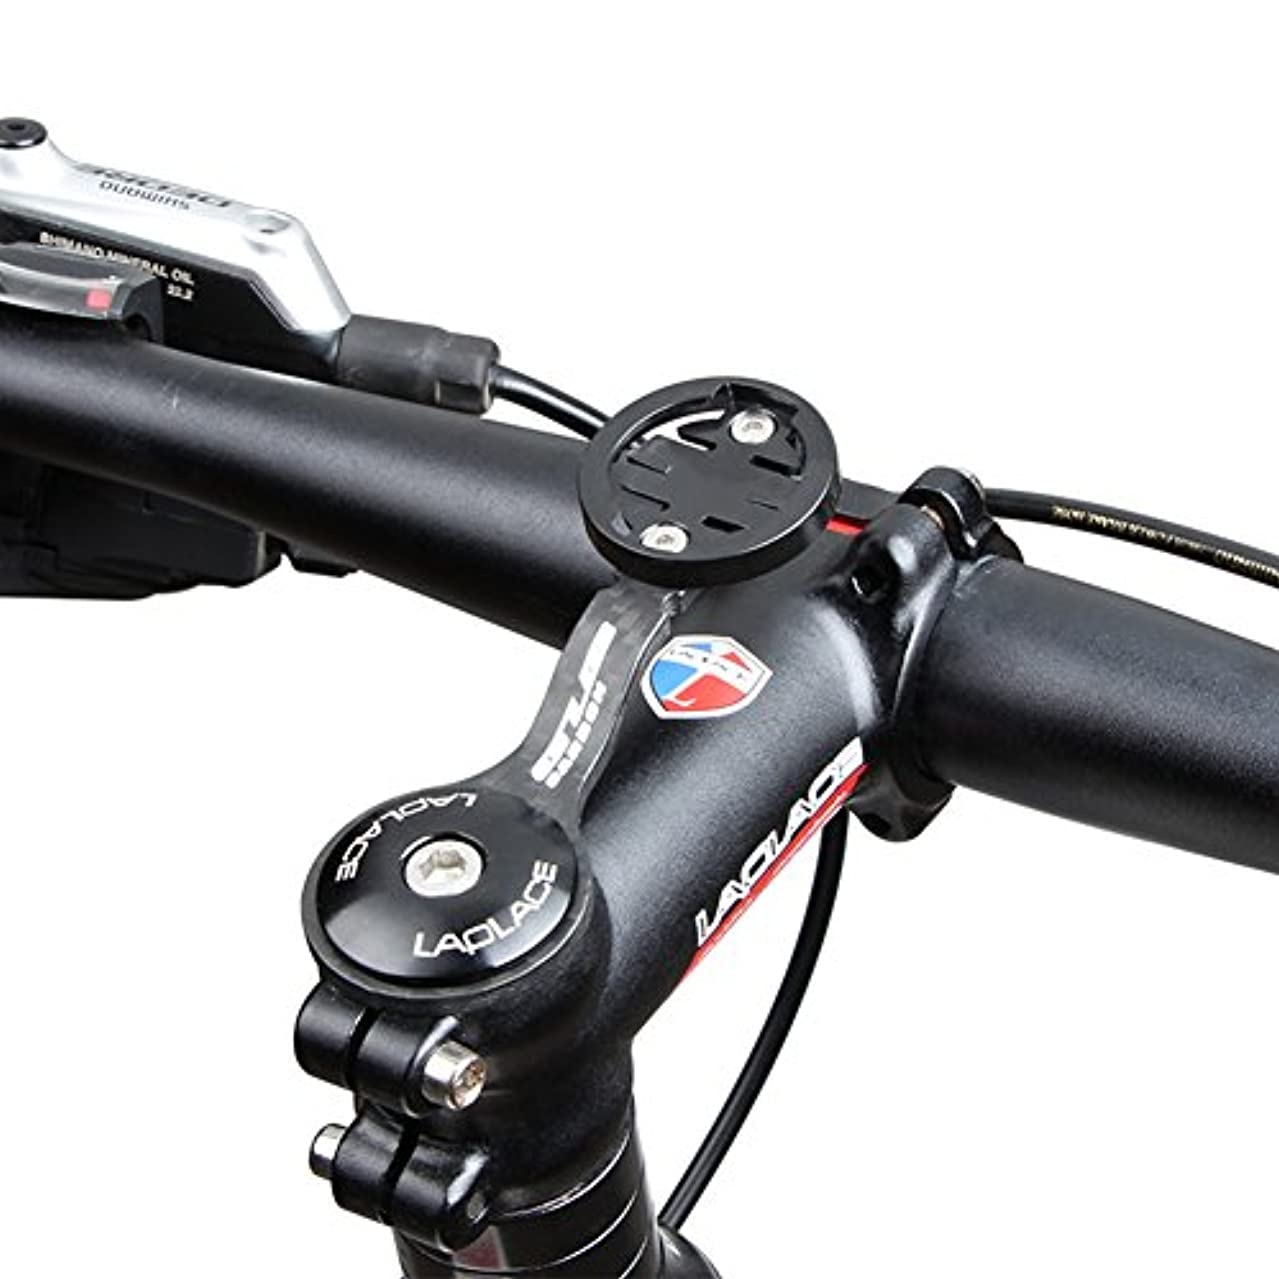 証言する作る造船Carbon Fiber Garmin Bike Mount with Carbon Finish Garmin Edge Mount Designed for Garmin Cateye Bryton Models